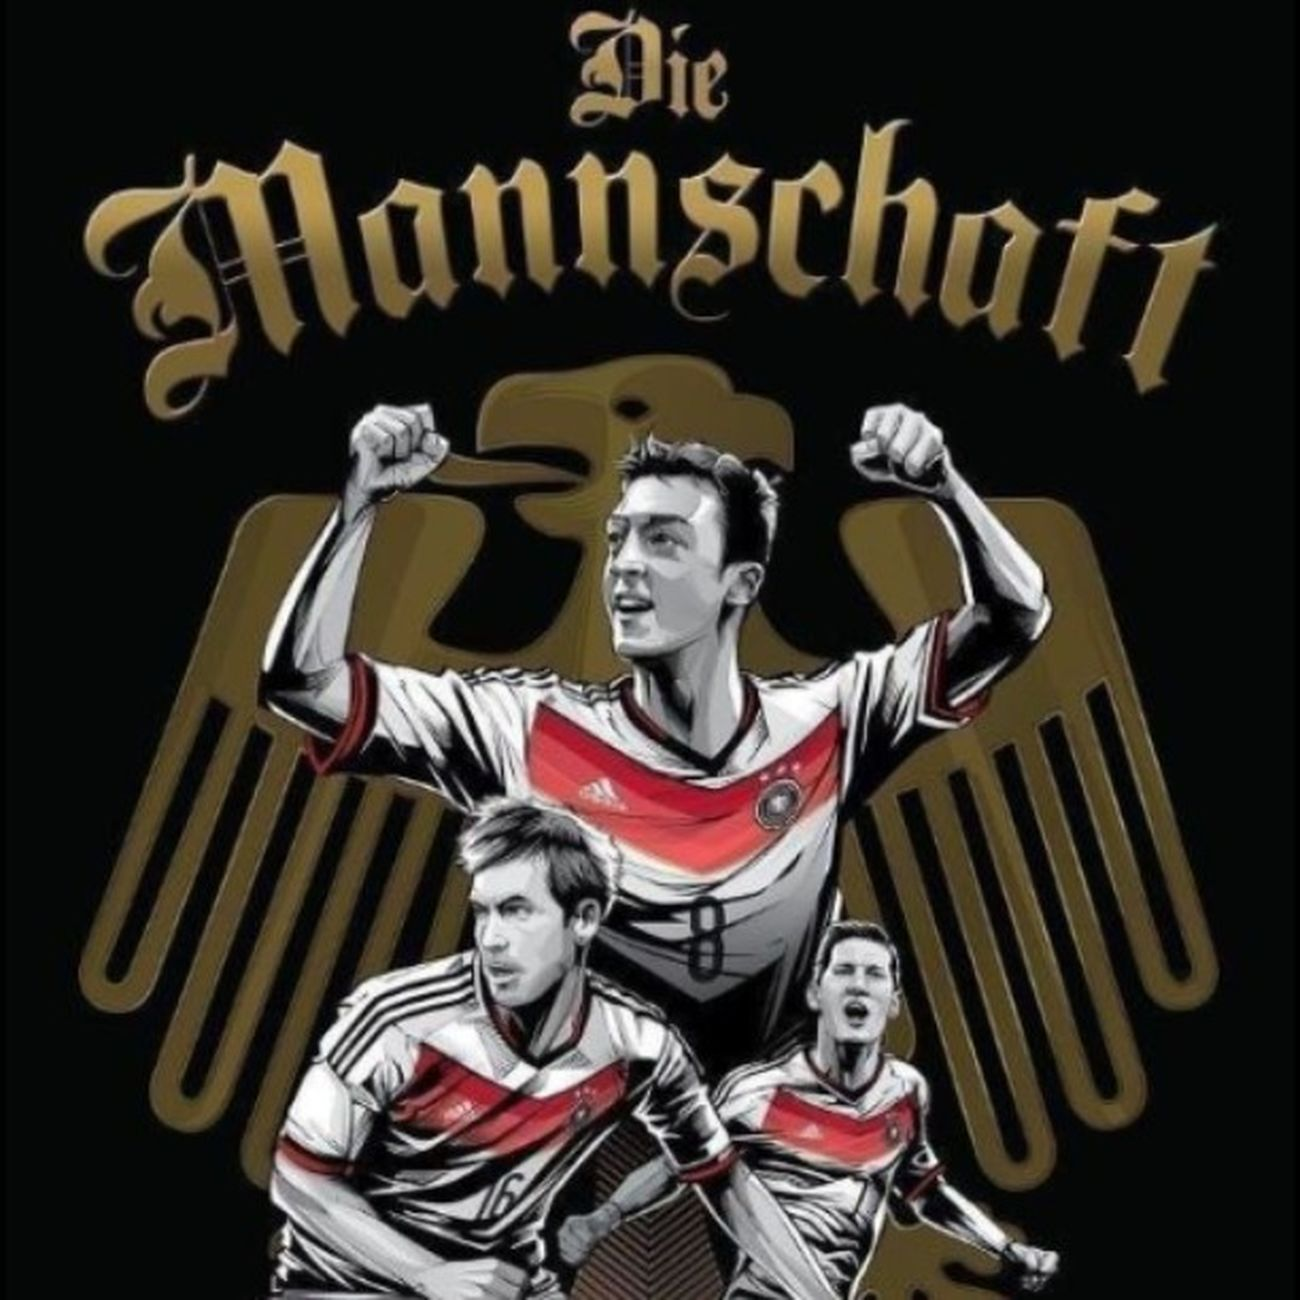 Germany Foosball Diemannschaft Worldcupfever